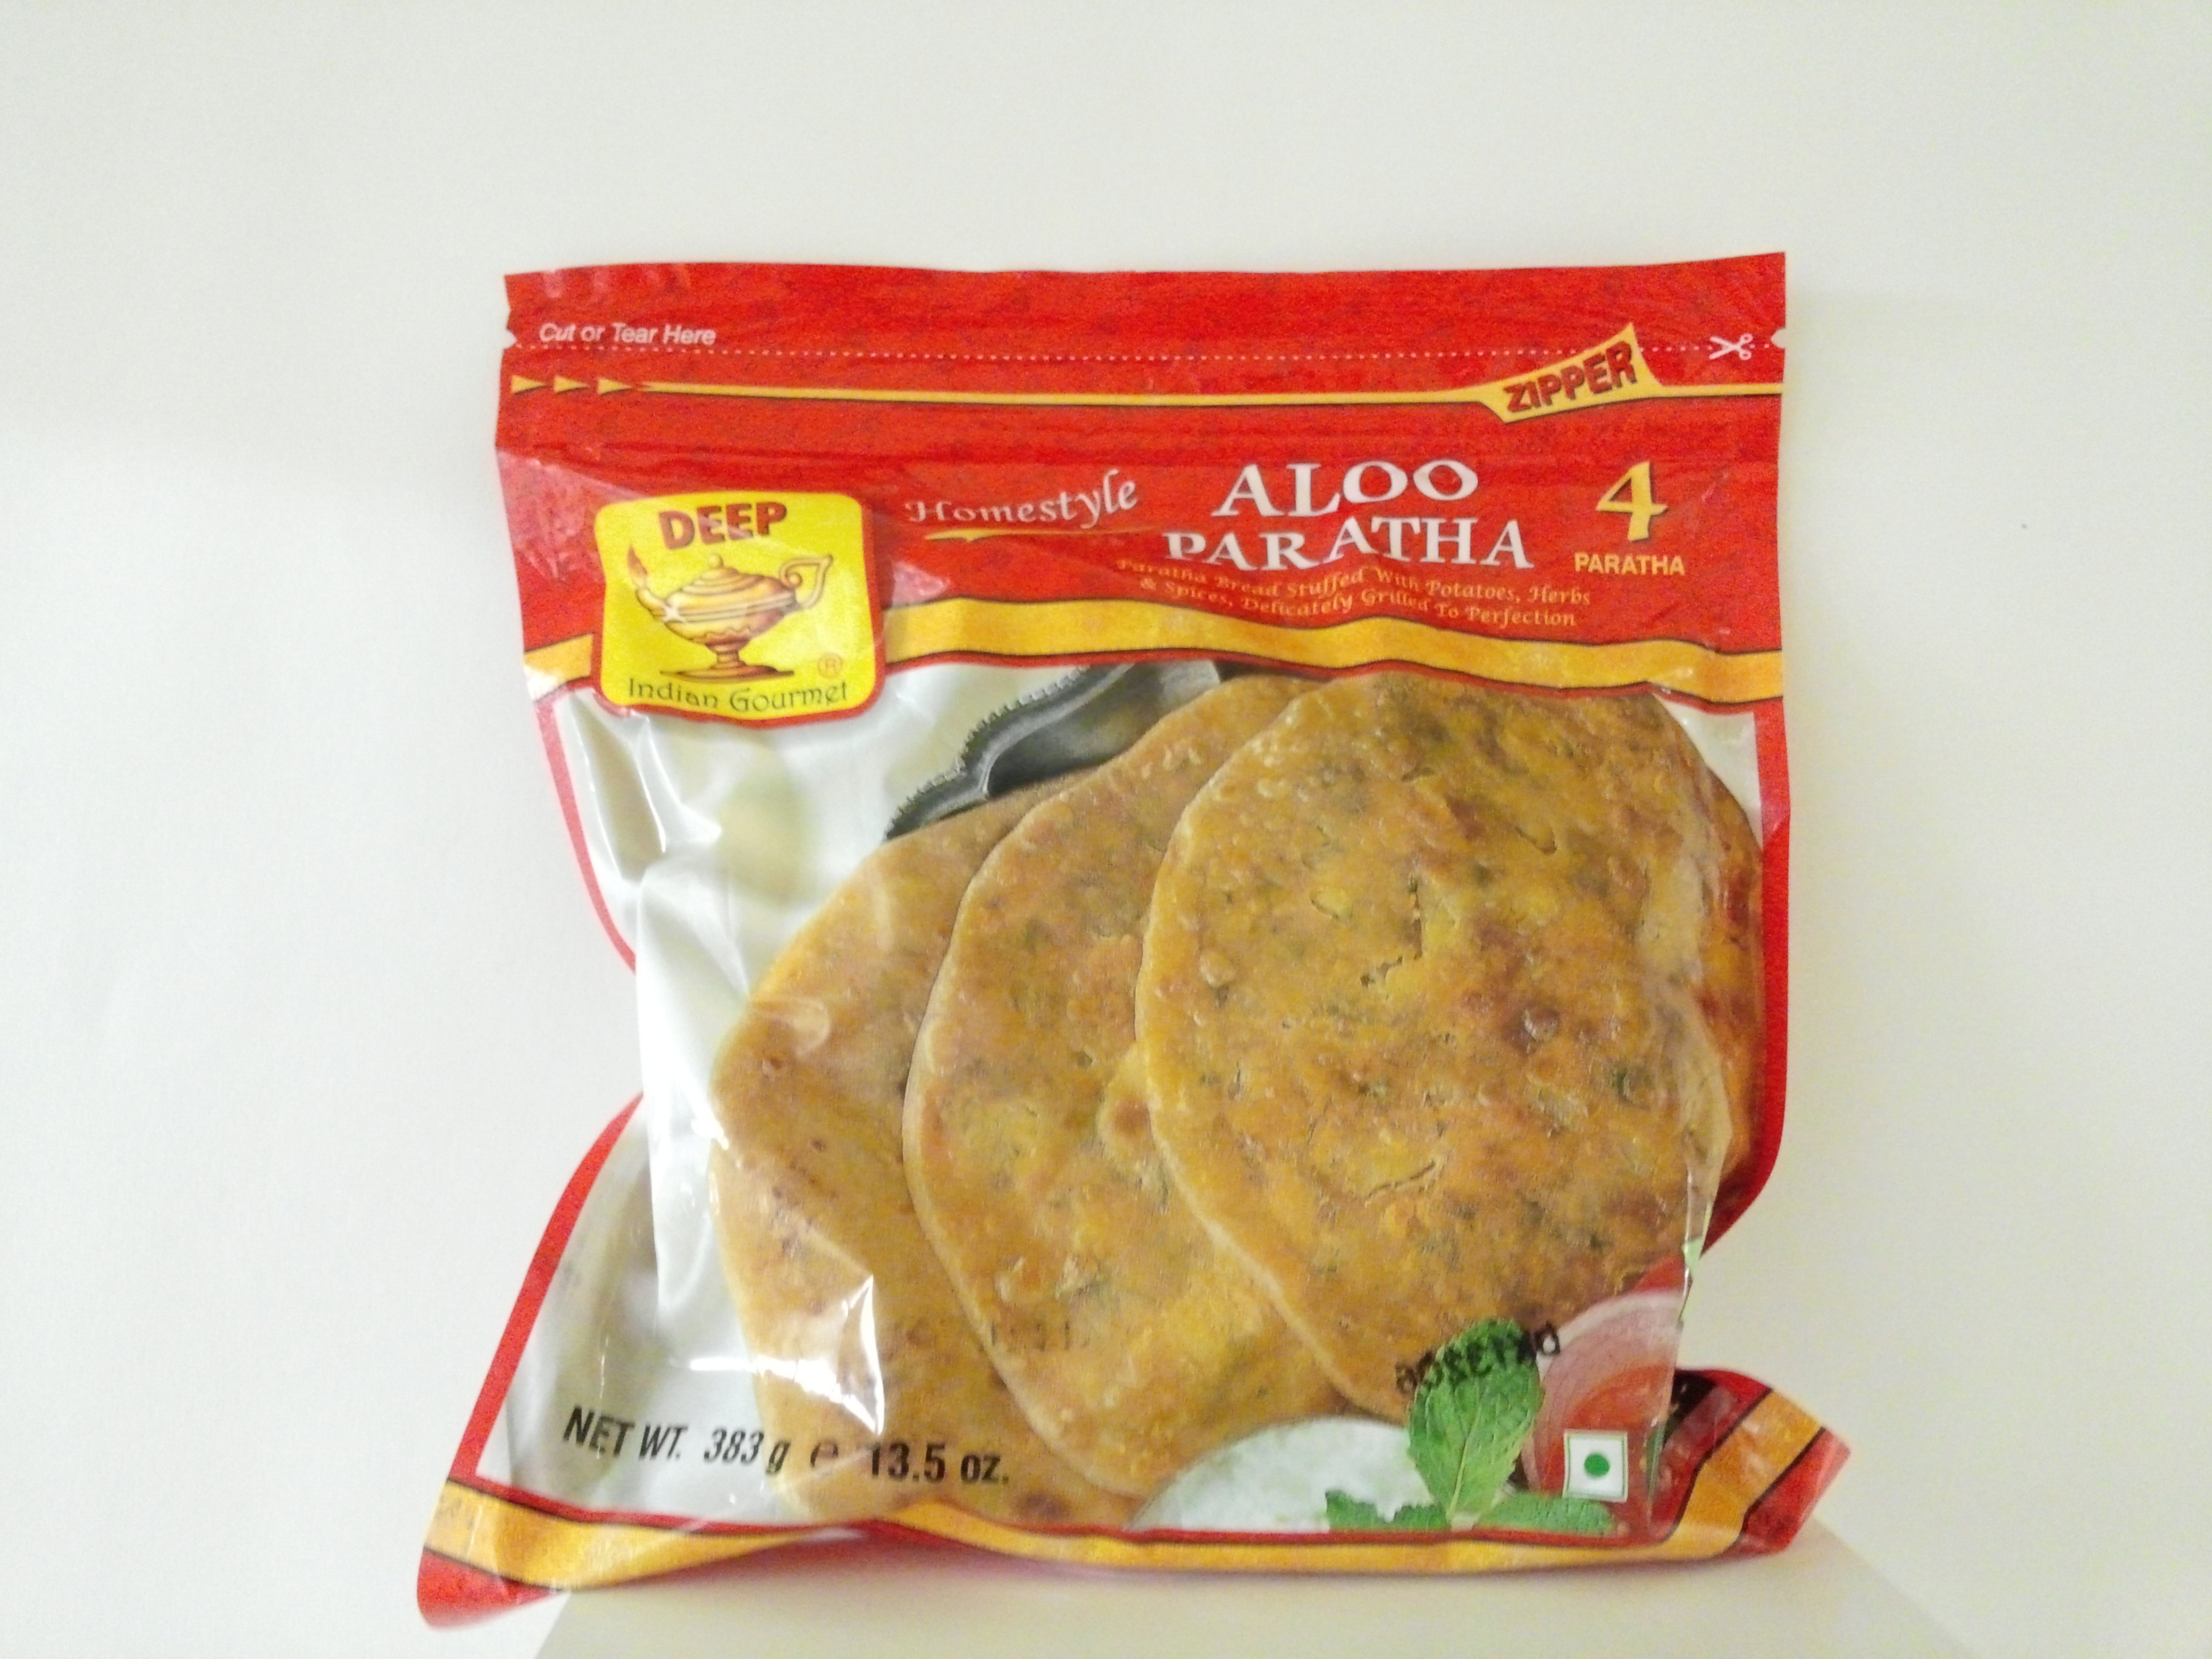 Deep Homestyle Aloo Paratha  4 pcs 13.5 oz